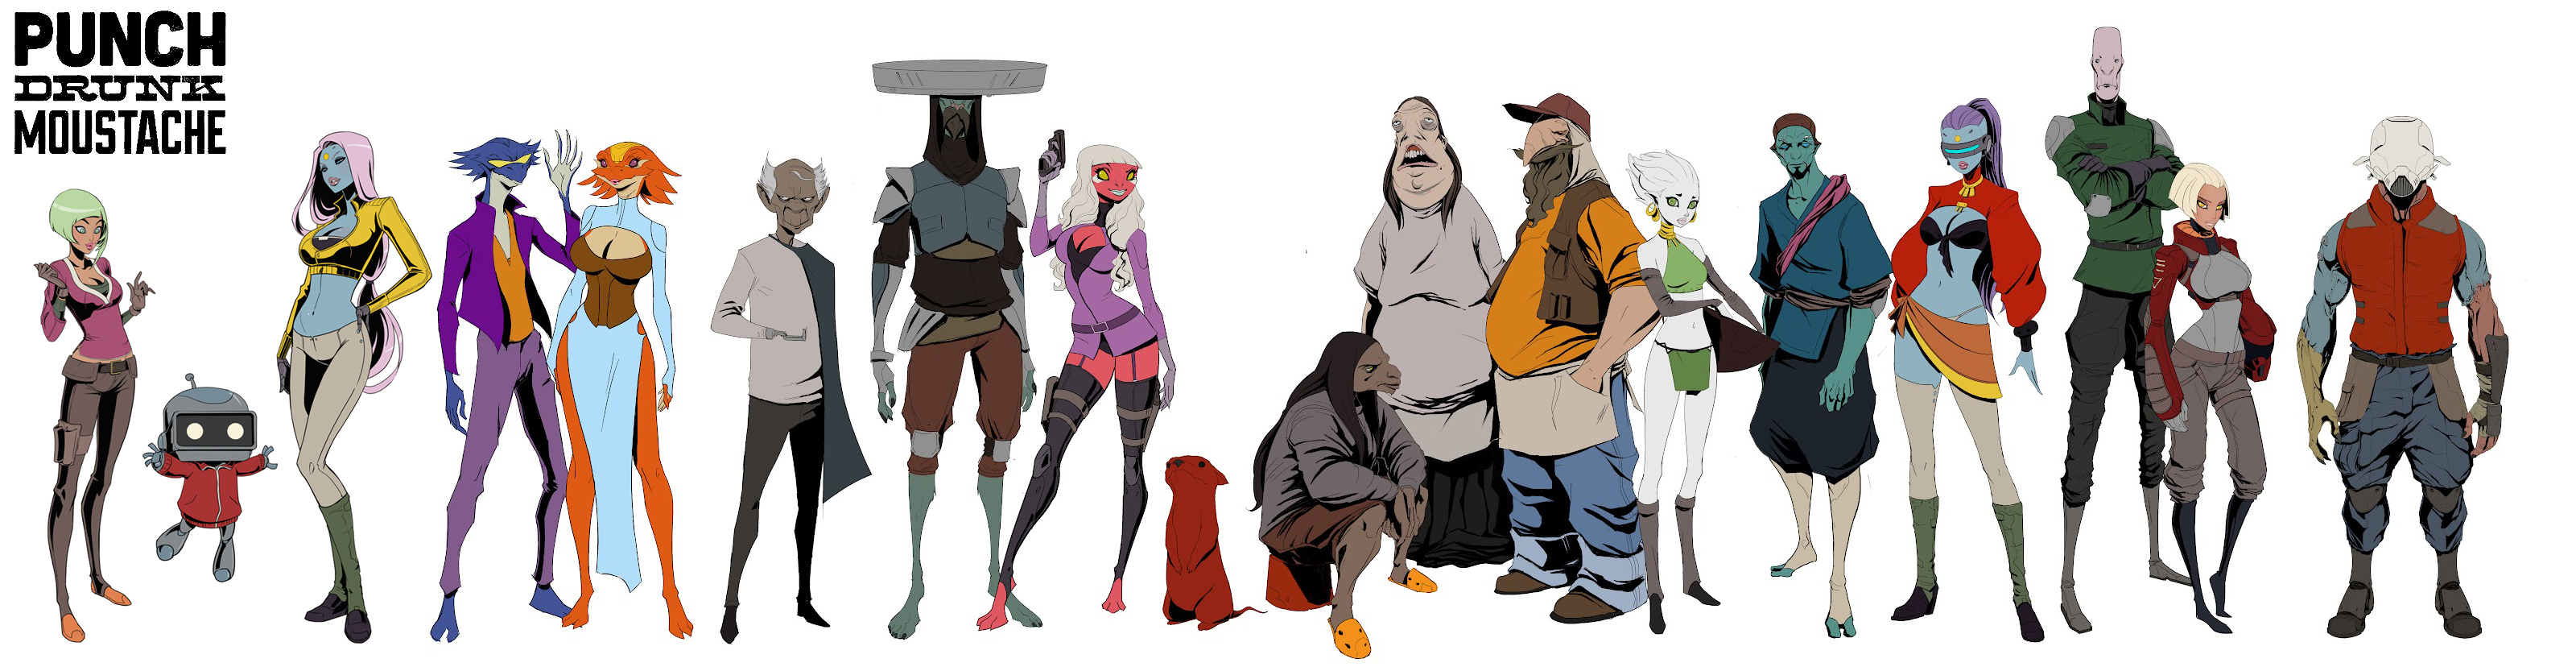 Character Design Lineup : Punch drunk moustache character lineup by songjong on